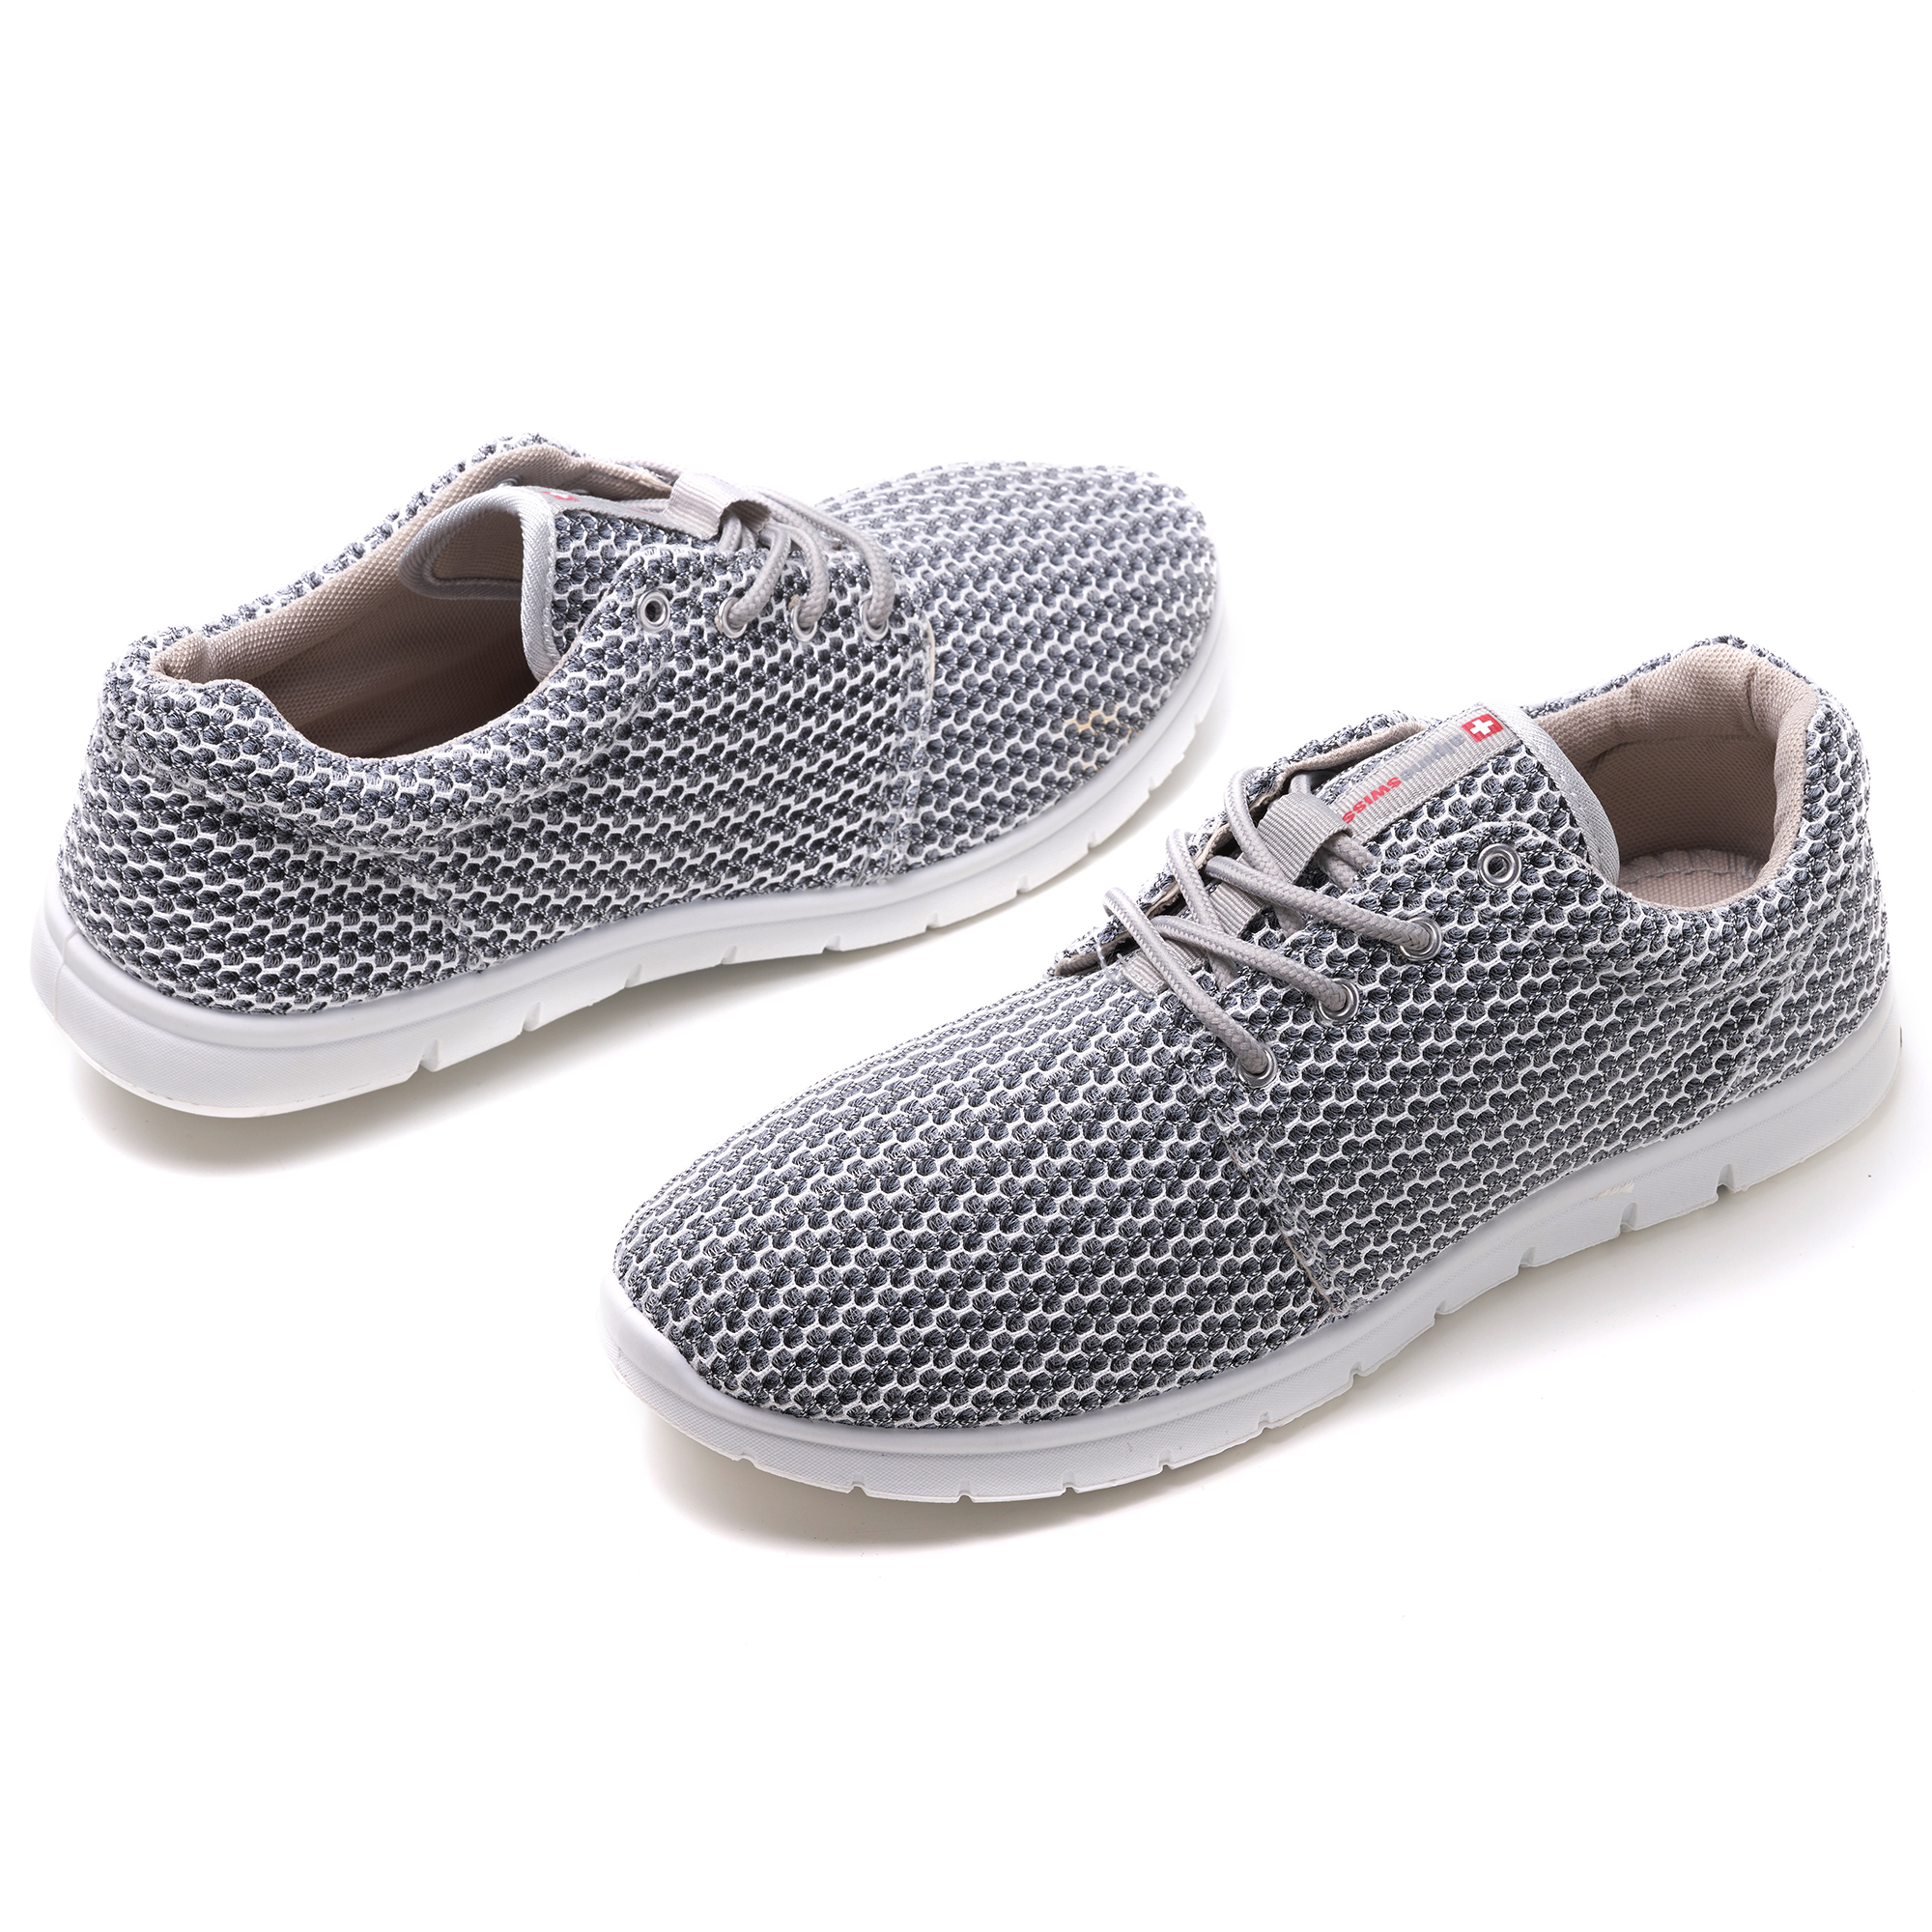 Alpine-Swiss-Kilian-Mesh-Sneakers-Casual-Shoes-Mens-amp-Womens-Lightweight-Trainer thumbnail 43